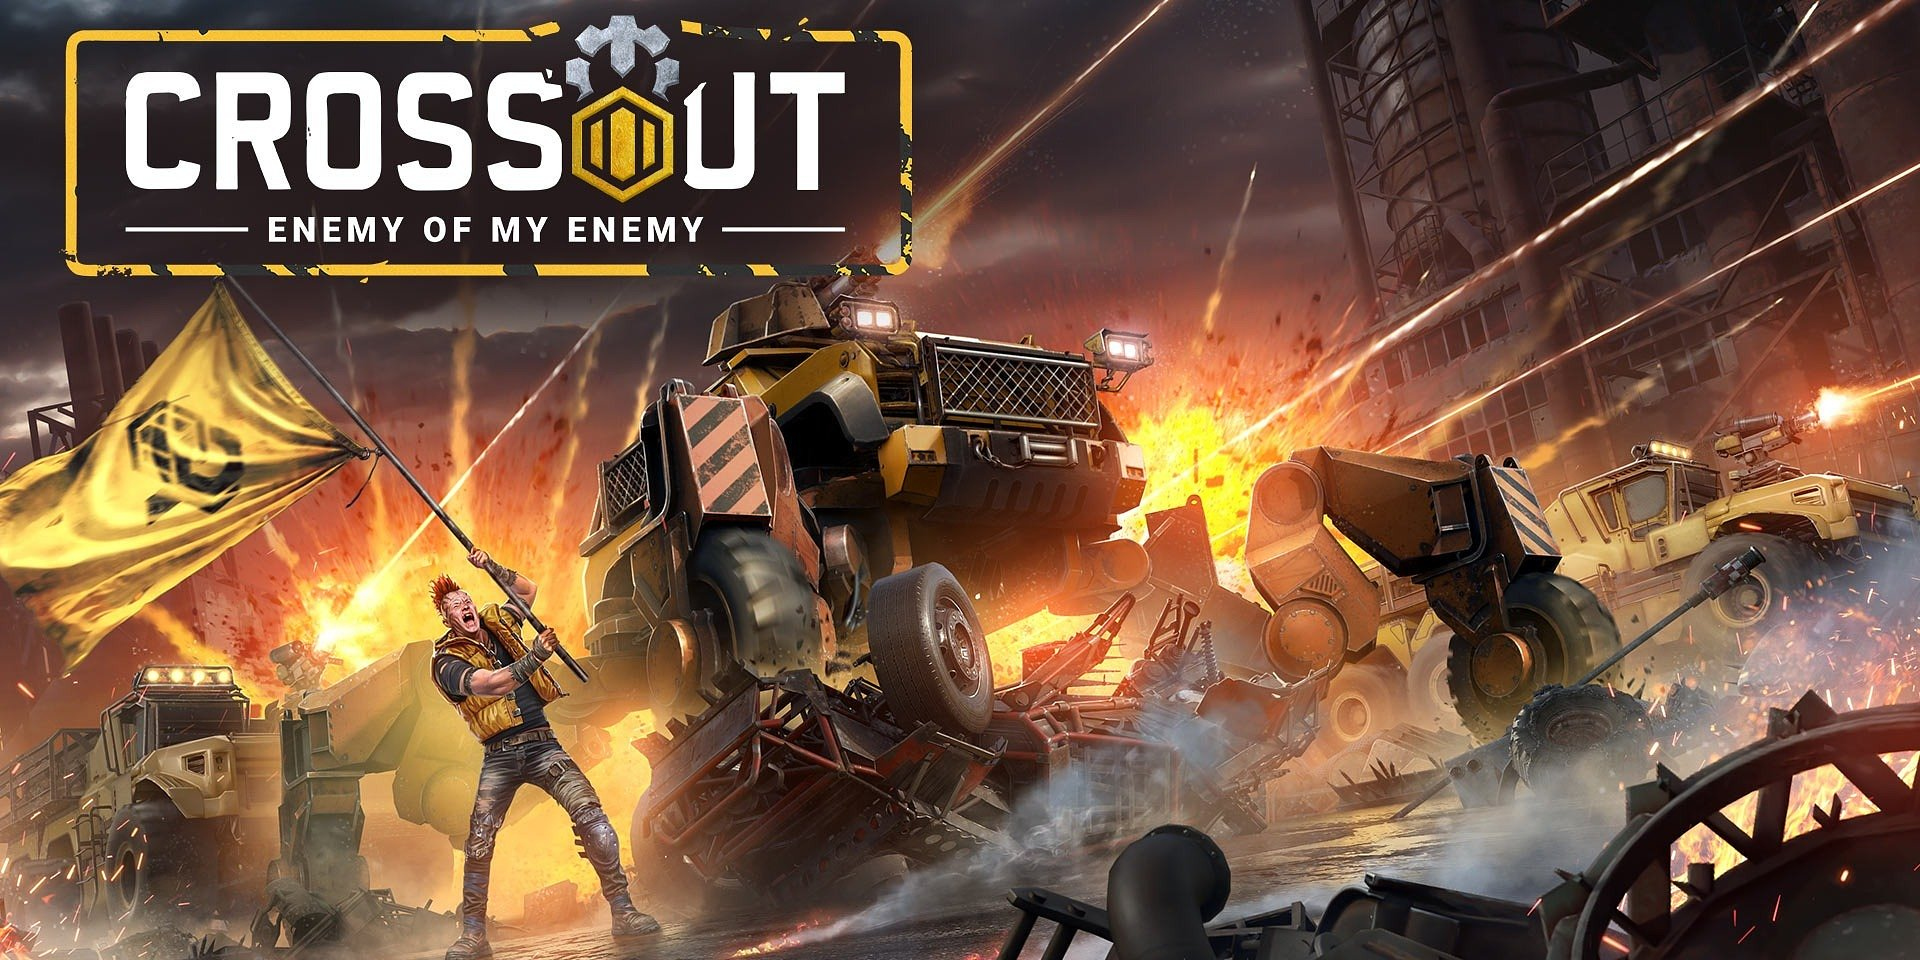 Lasers and nails will dominate the battlefield in the new epic Crossout story mission